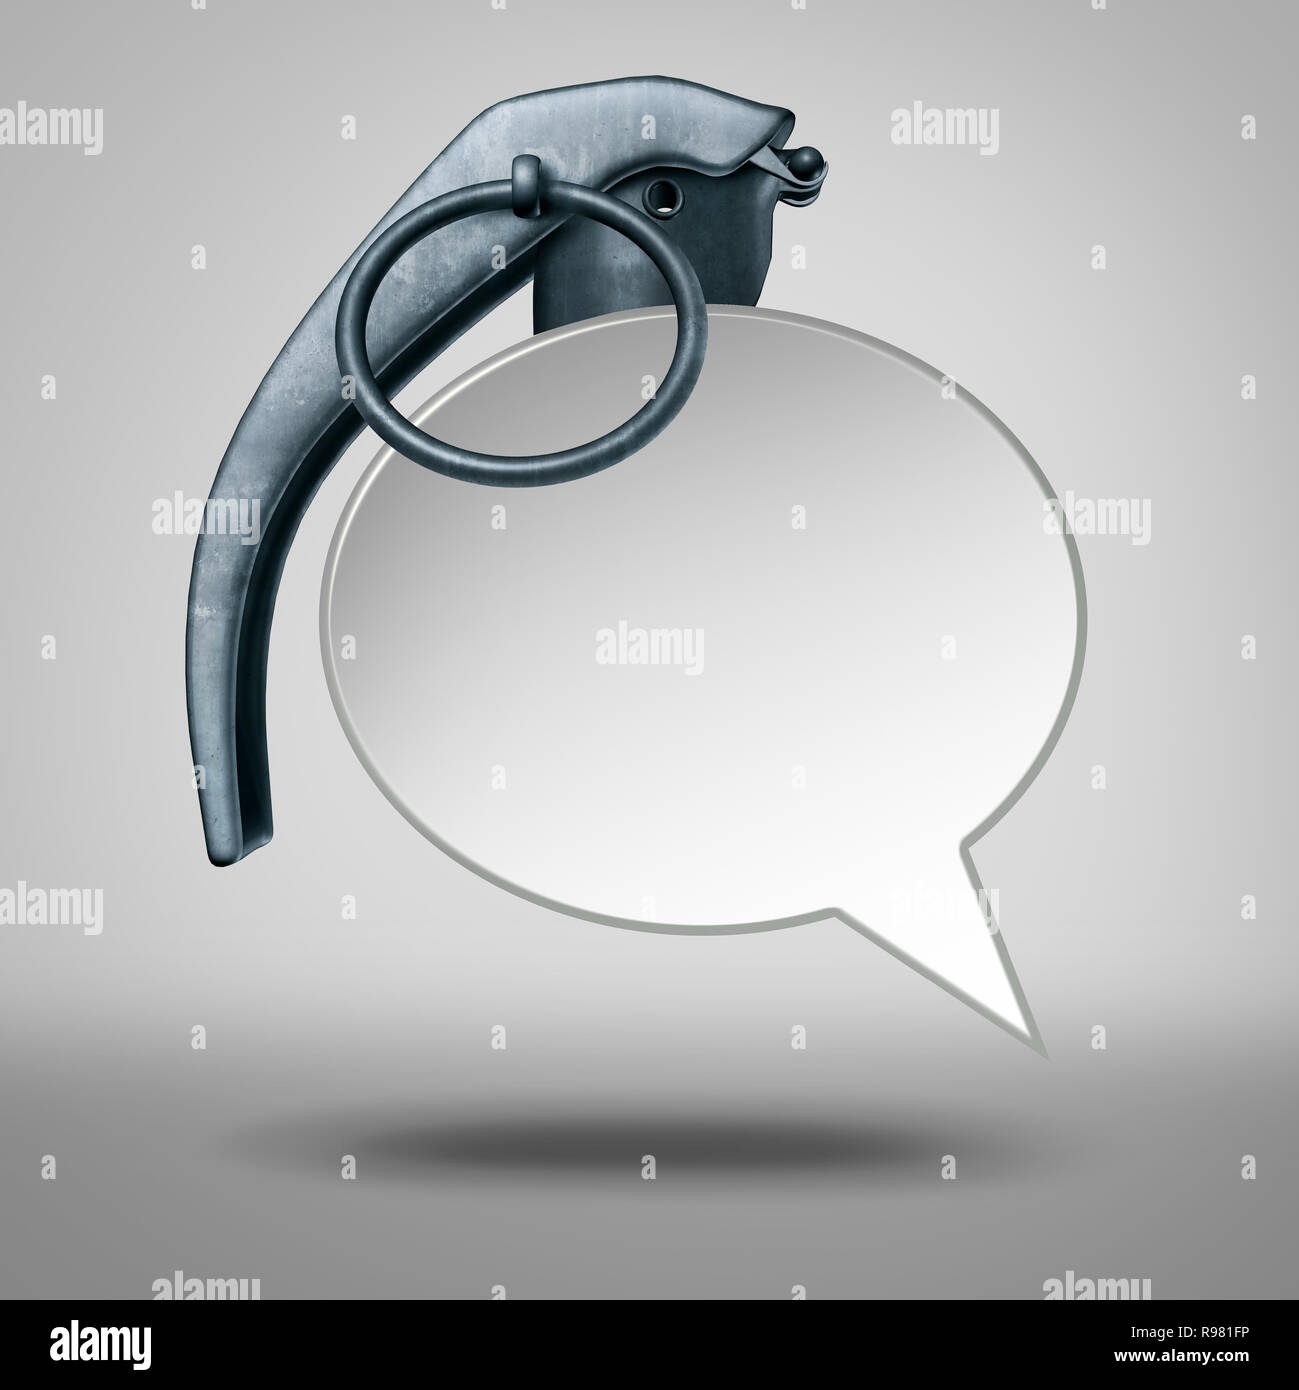 Speech bomb and hate talk or abusive language social issue symbol representing cyberbullying as a 3D illustration. Stock Photo